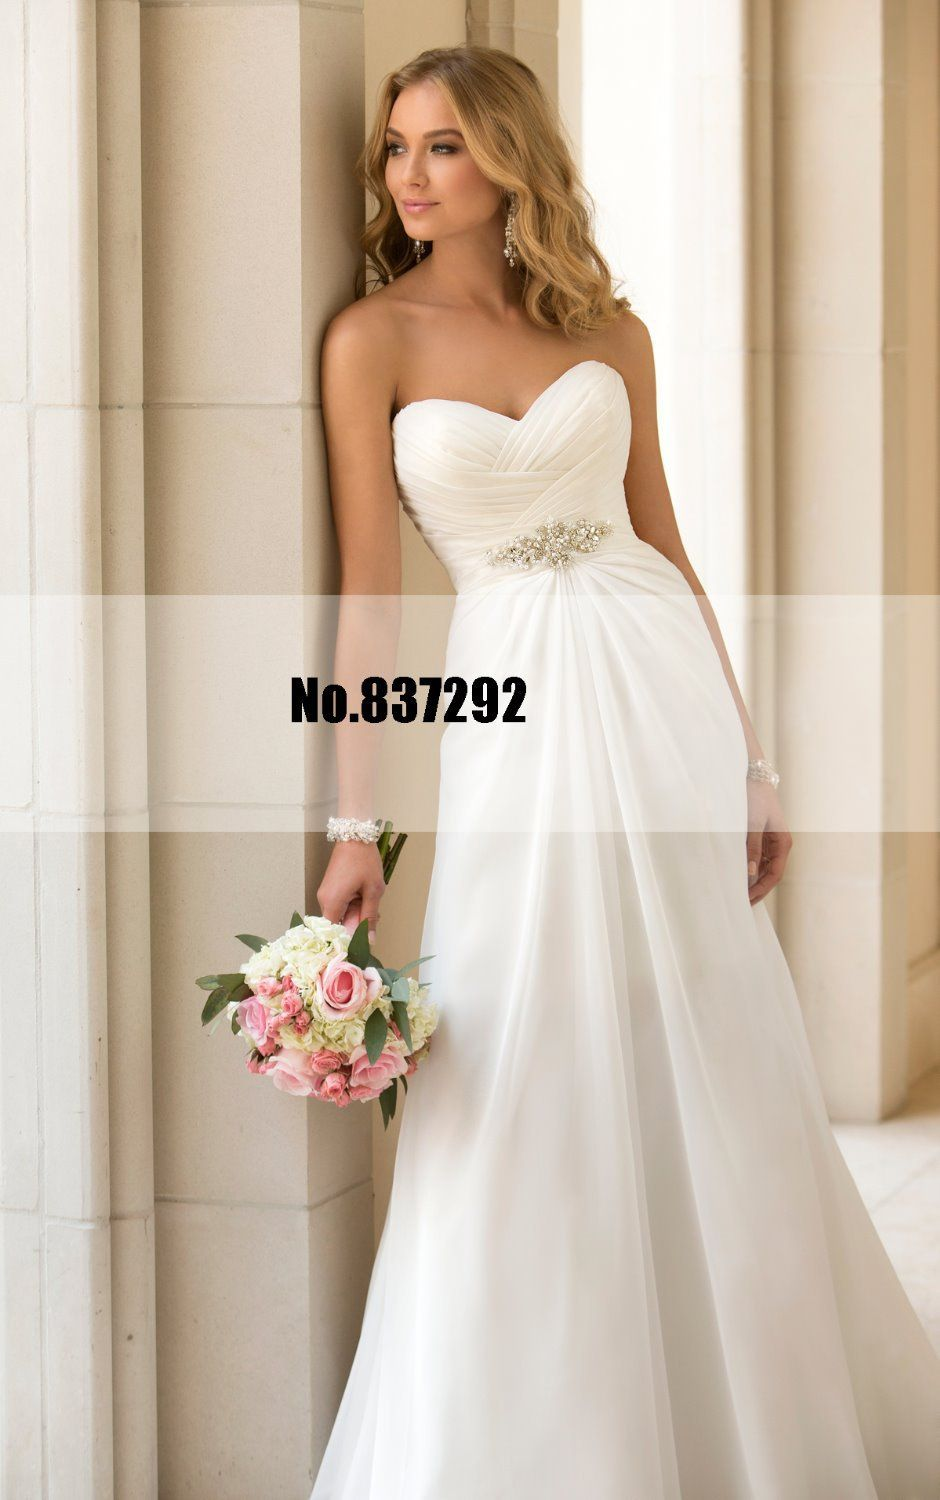 77 cheap wedding dresses under 50 cute dresses for a wedding 77 cheap wedding dresses under 50 cute dresses for a wedding check more at ombrellifo Images